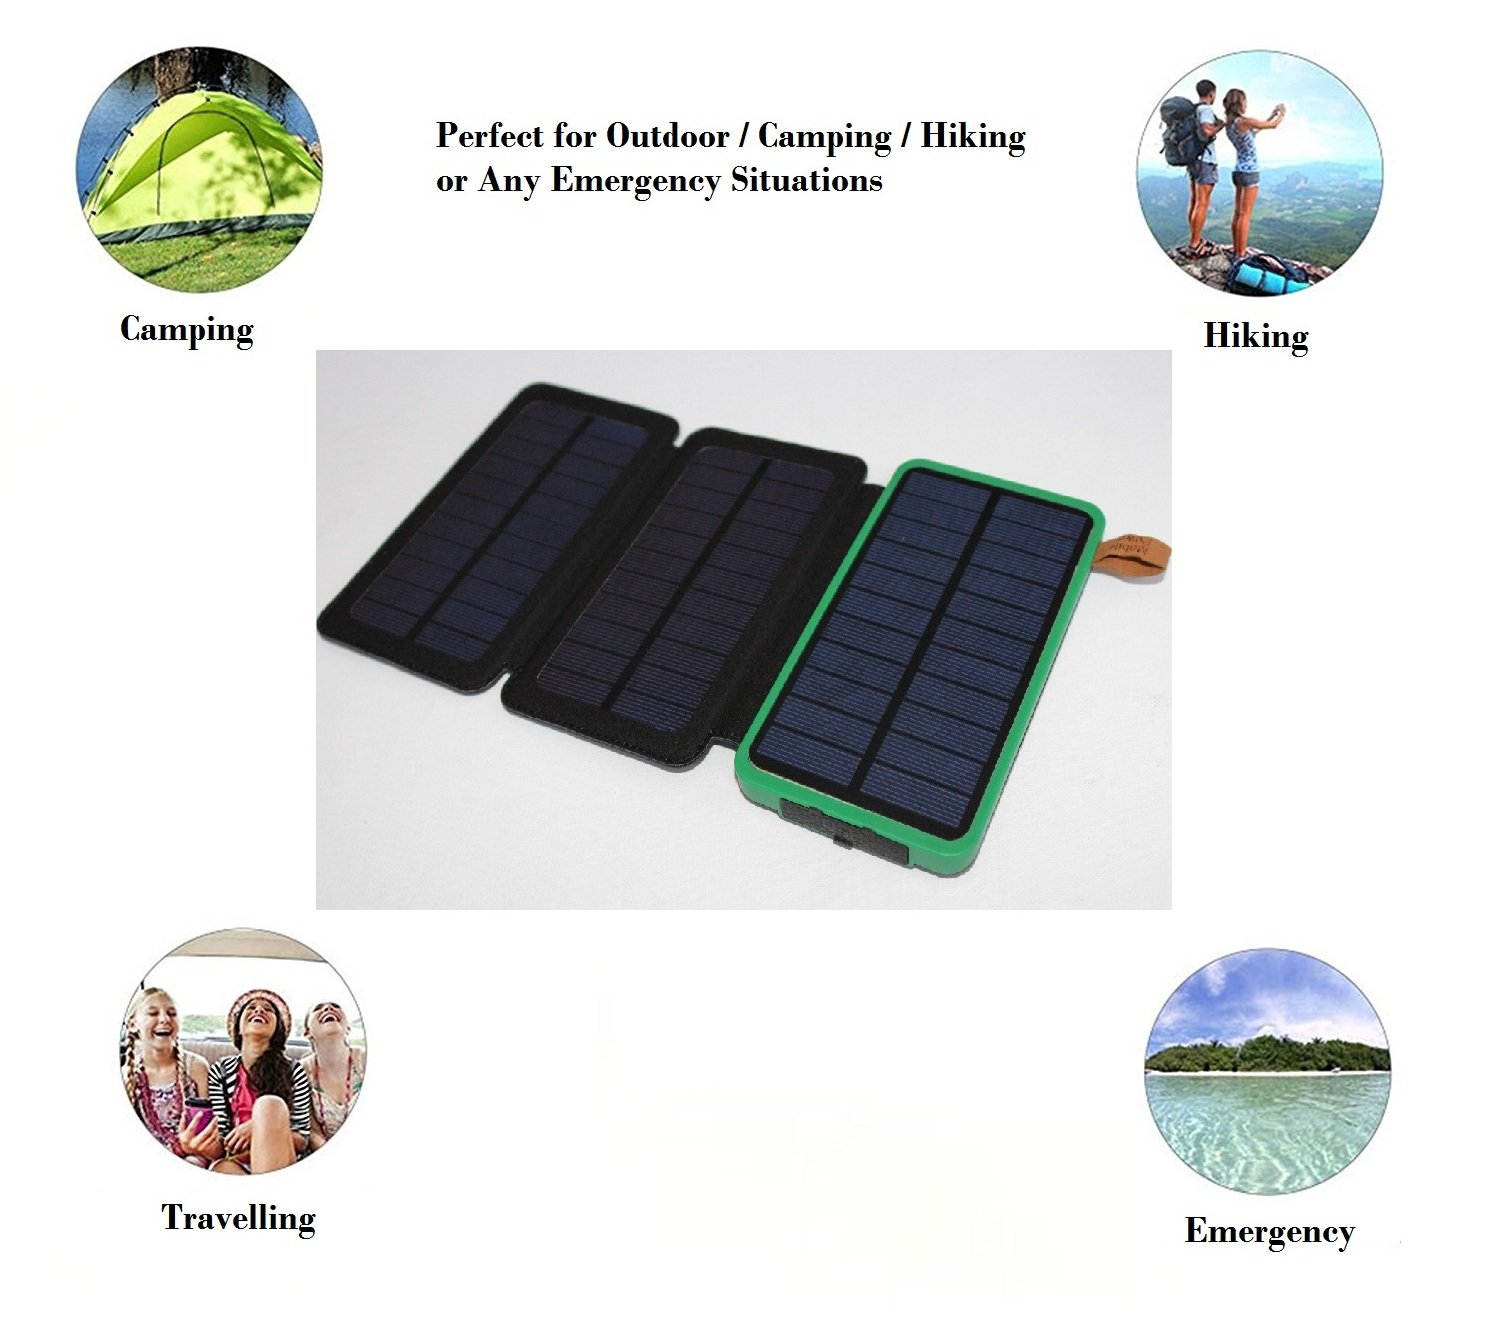 Solar Charger Waterproof 30000mAh Power Bank EZSTATION 1 or 3 Foldable Solar Panels Portable Battery Pack 2 USB For iPhoneX 8/7plus iPad Samsung Outdoor Camping Travelling (GREEN (3 Solar Panels))